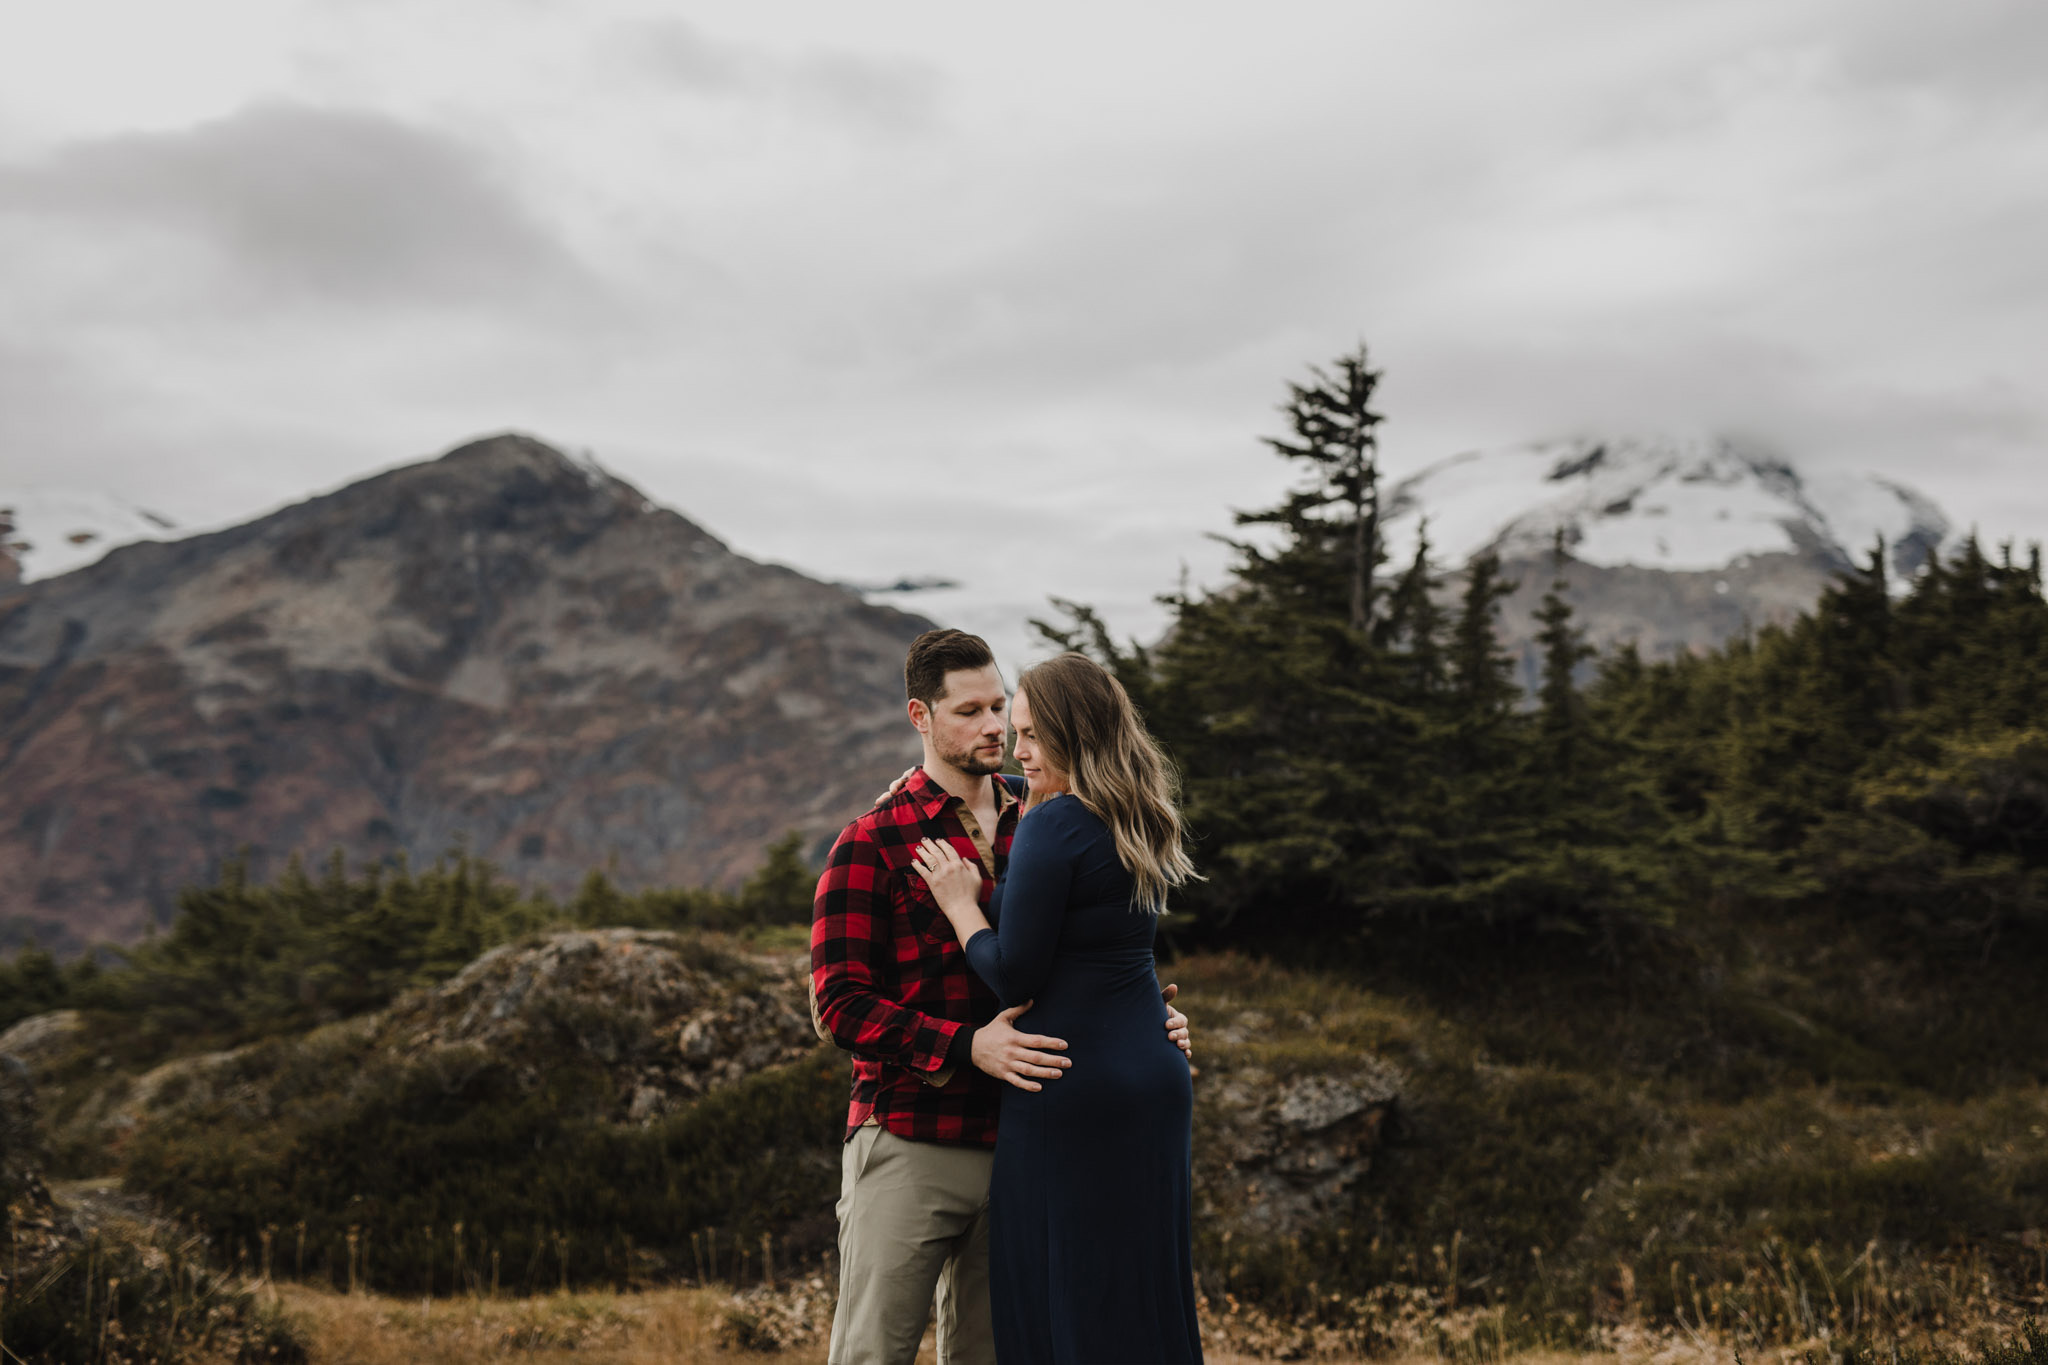 BC Mountain Top Engagement Photographer - portraits in the mountains